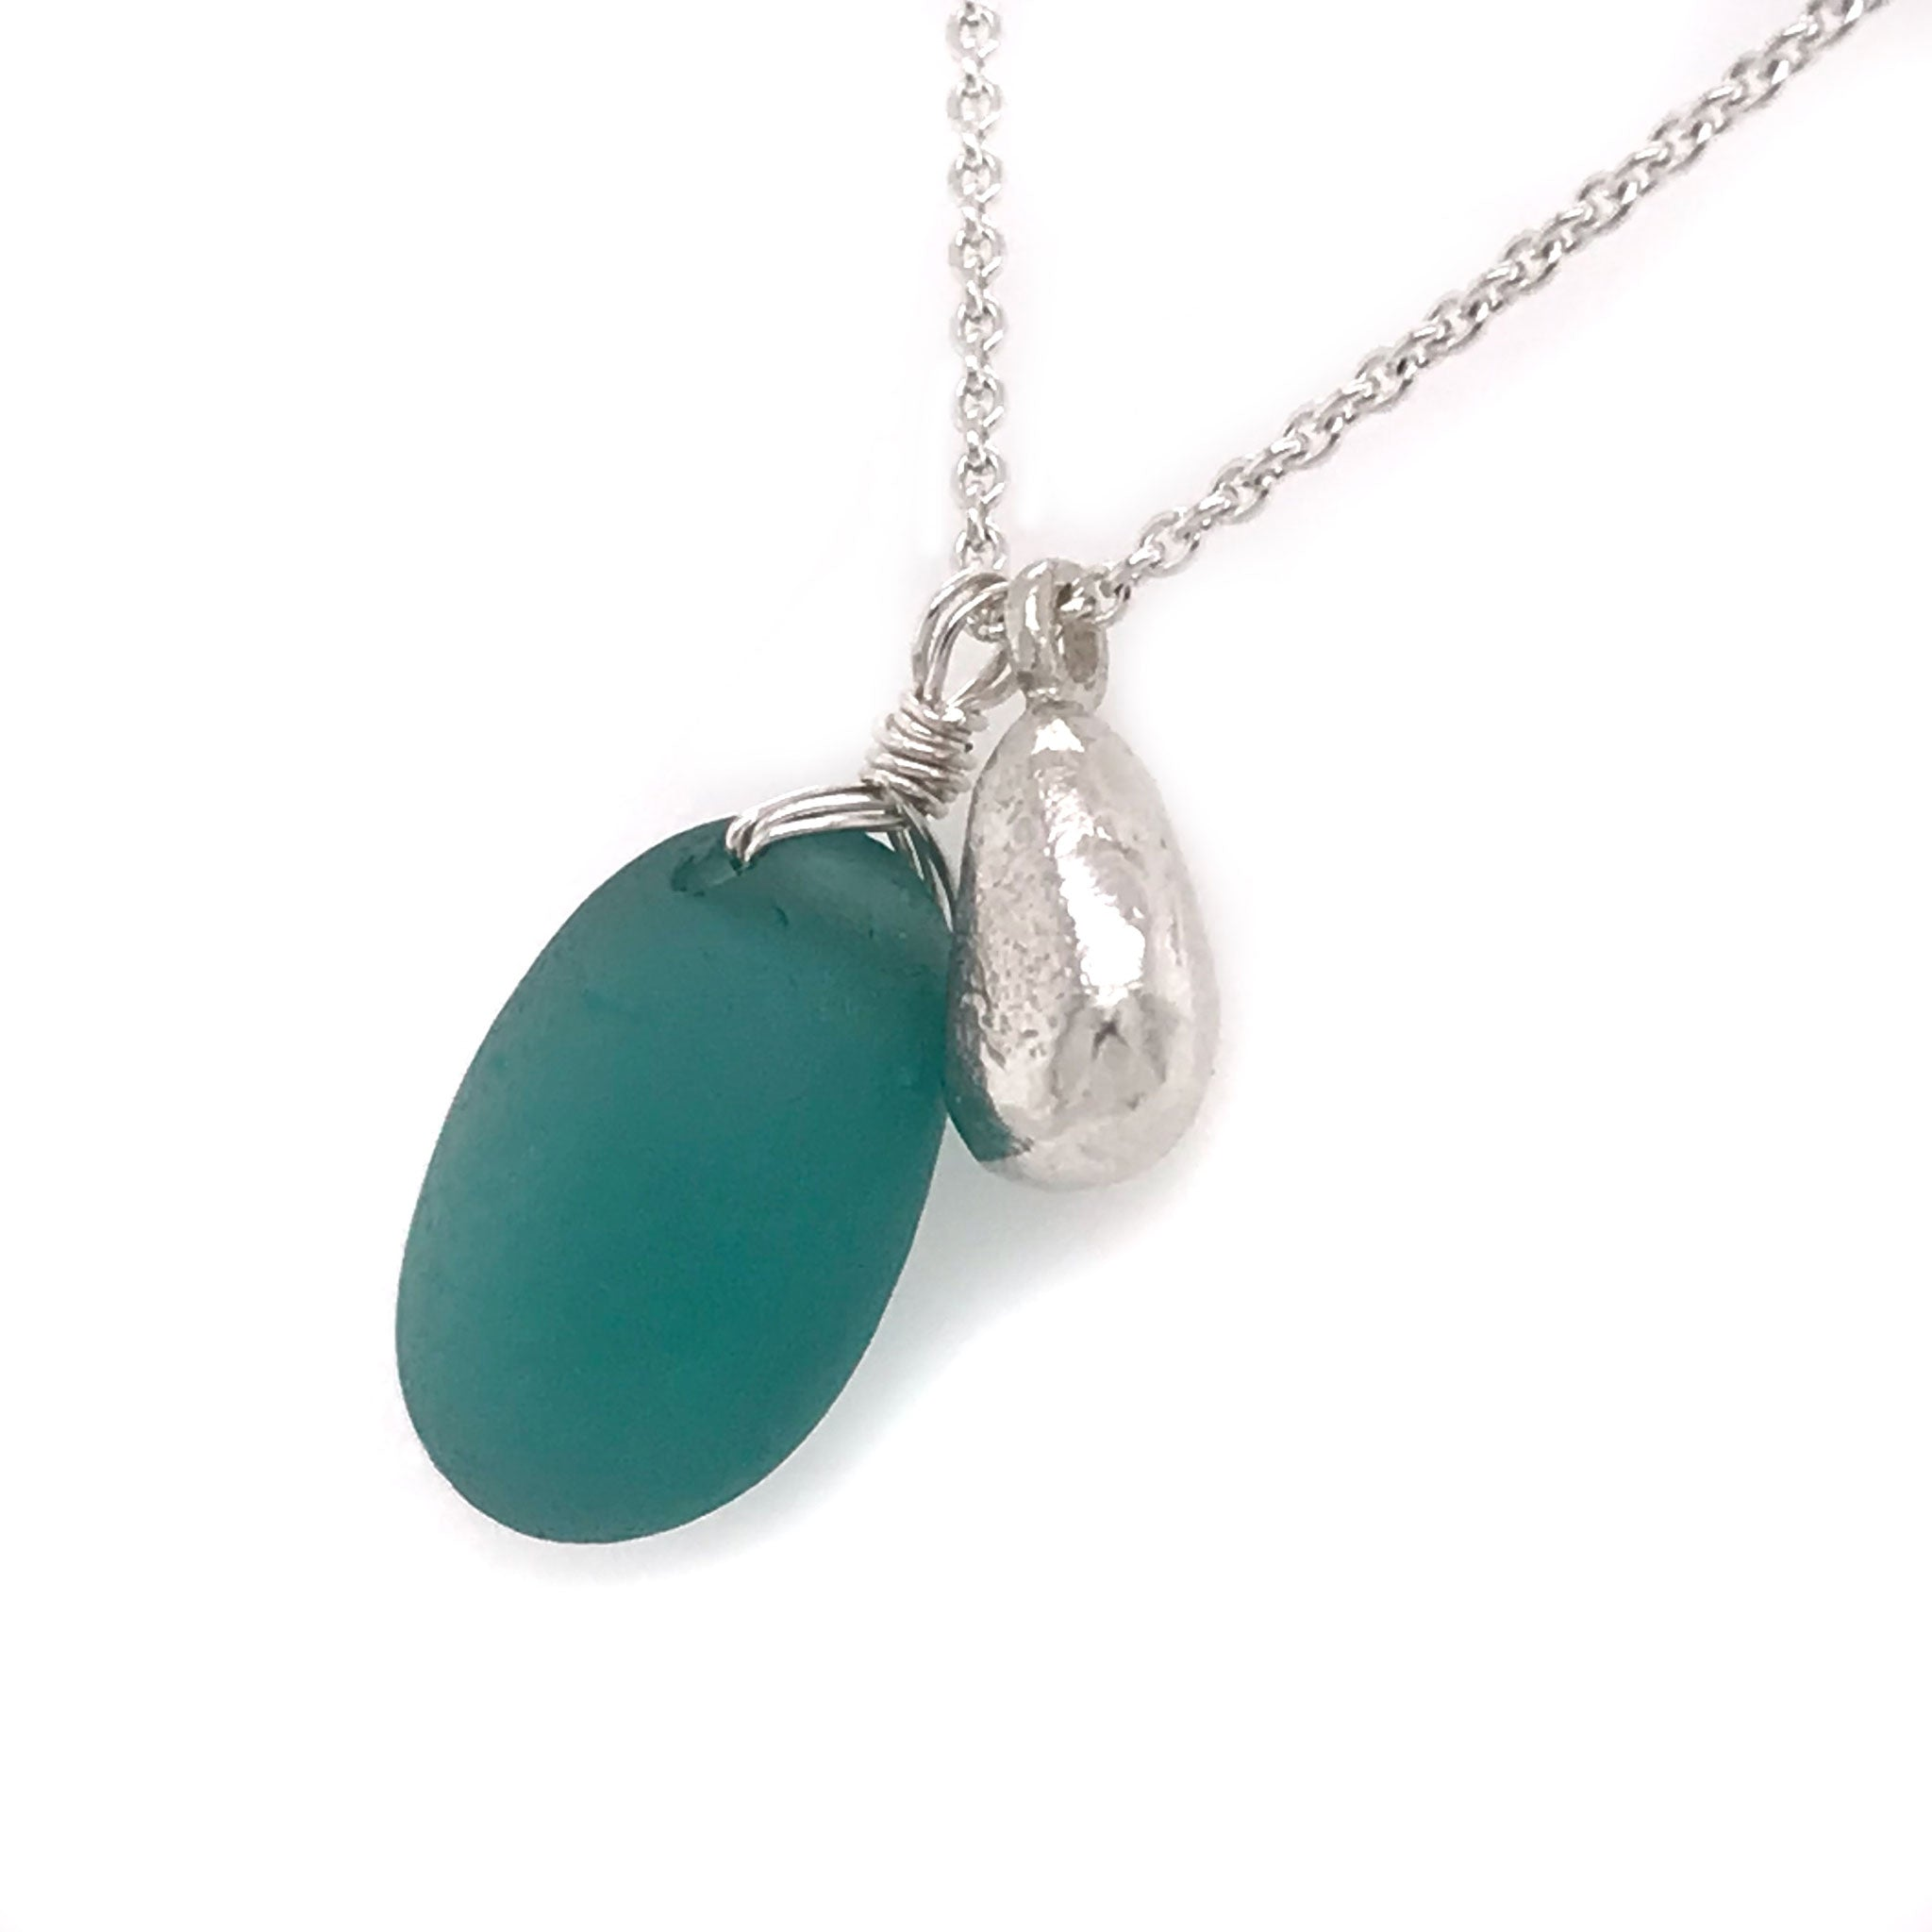 teal seaglass necklace on sterling silver chain with solid silver teardrop charm Kriket Broadhurst jewellery made in Sydney